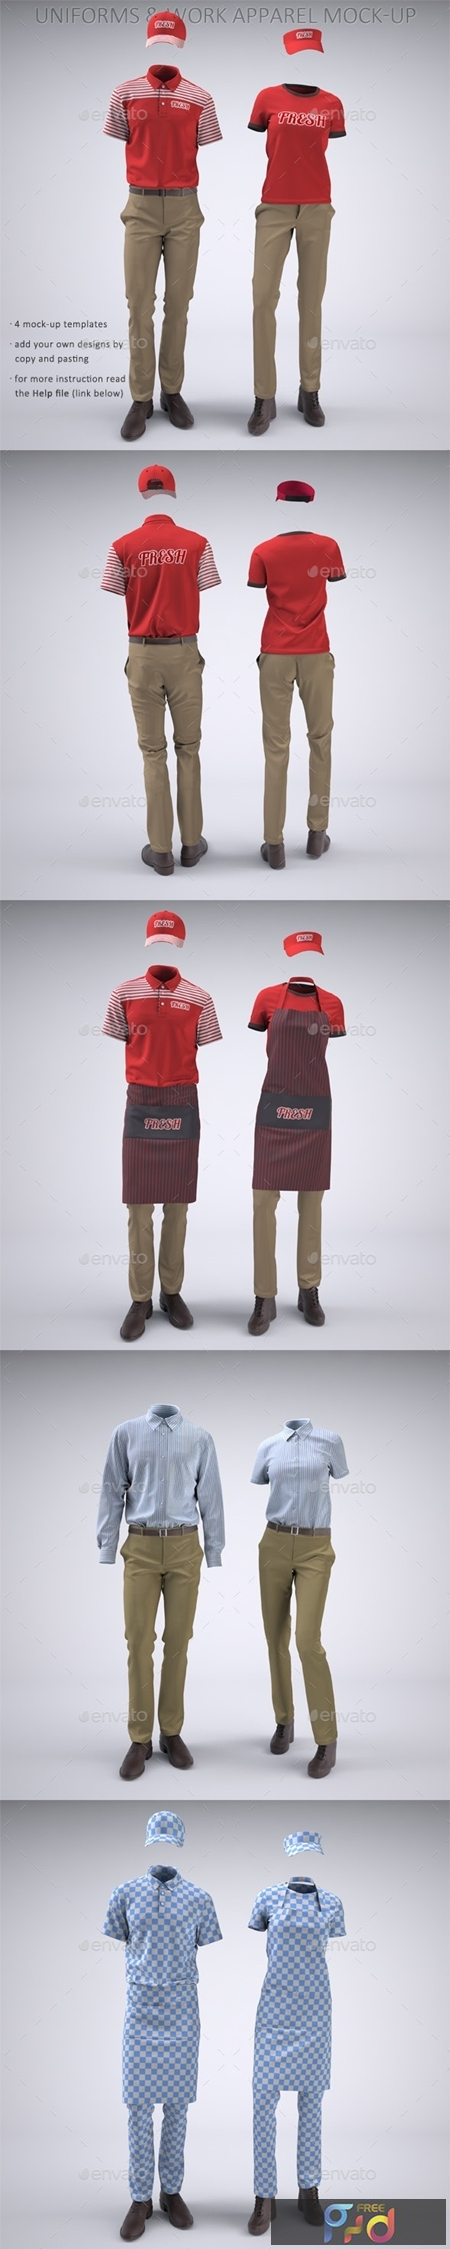 Food Service Uniforms and Retail Uniforms Mock-Up 22094416 1